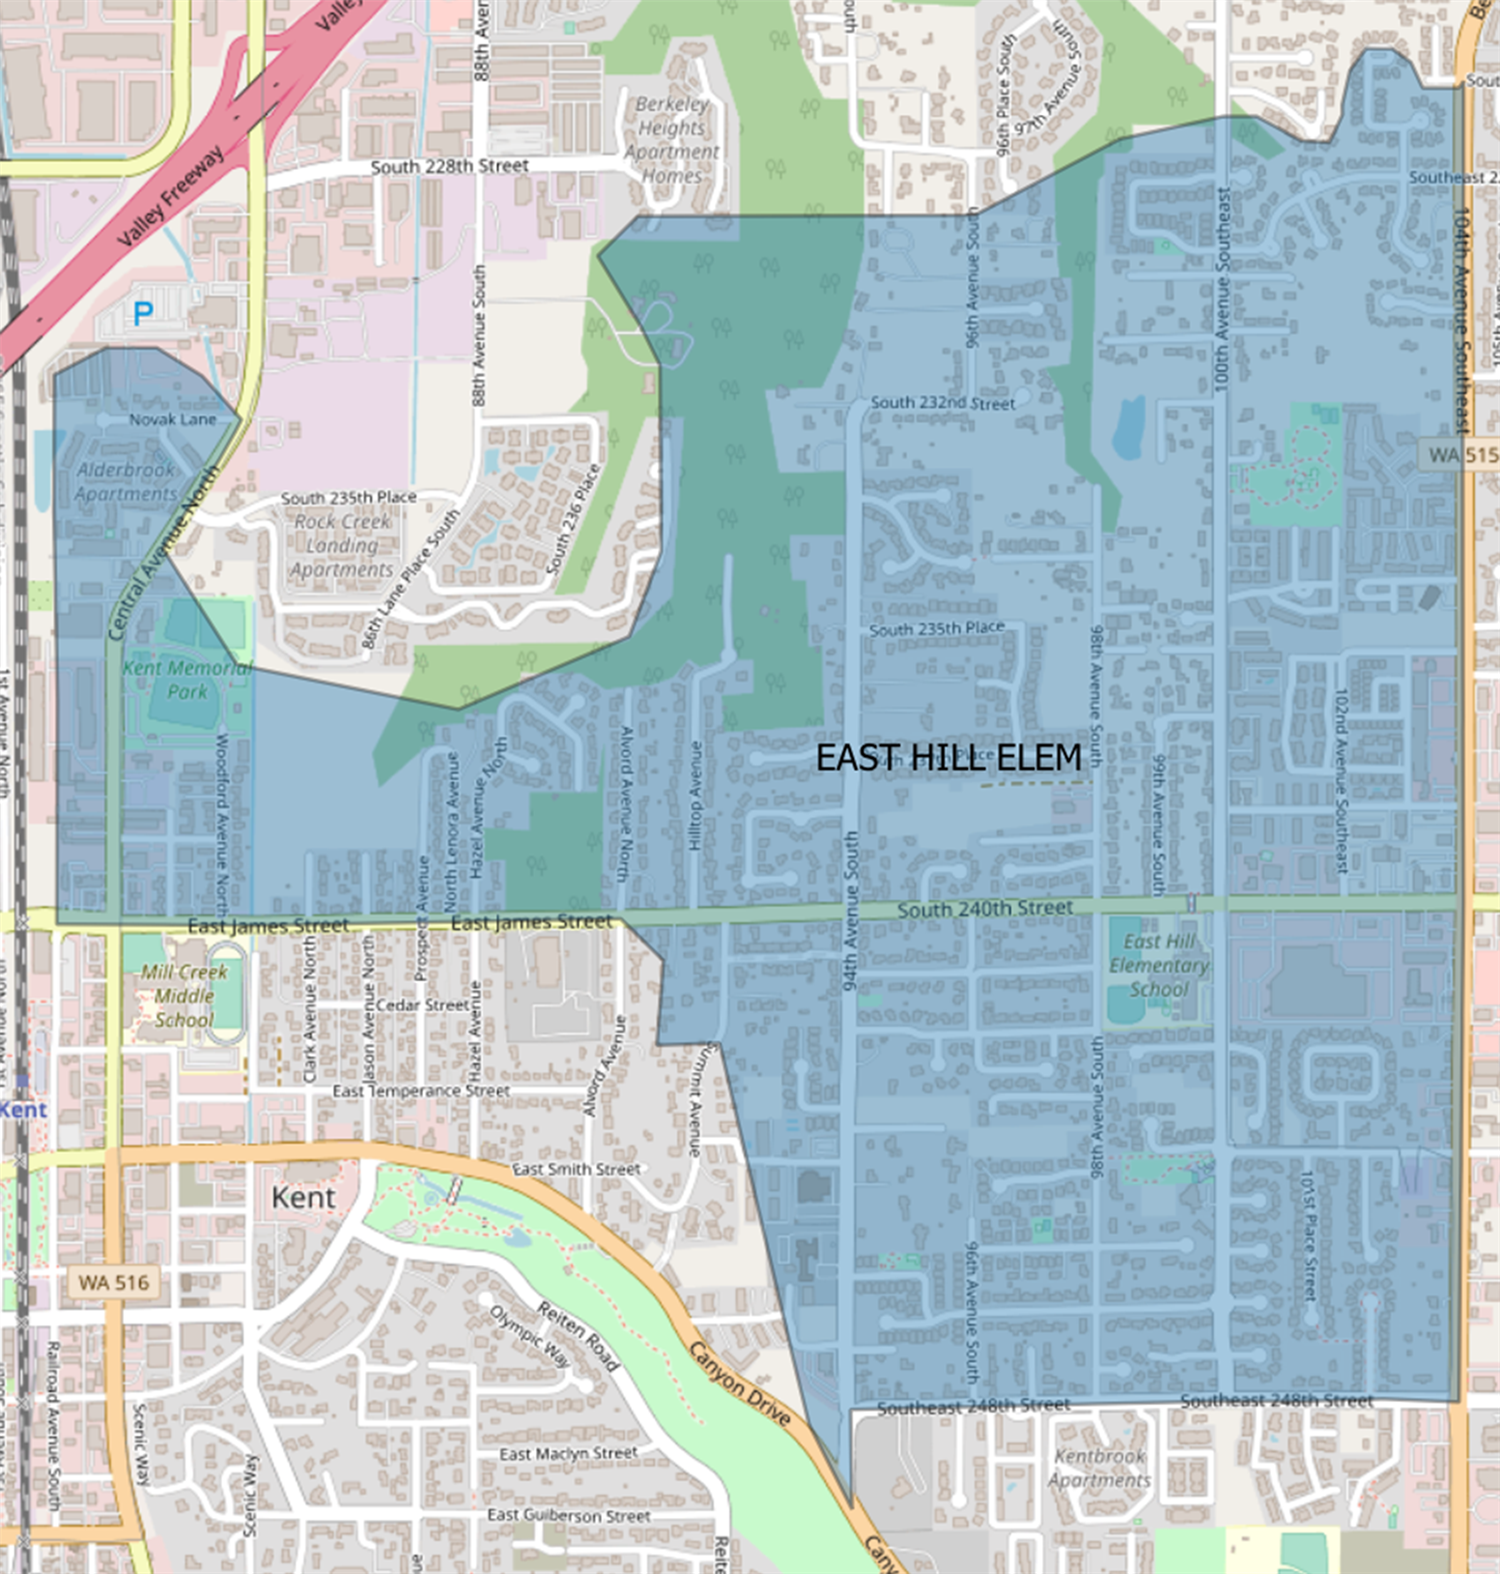 Current East Hill Elementary boundary map